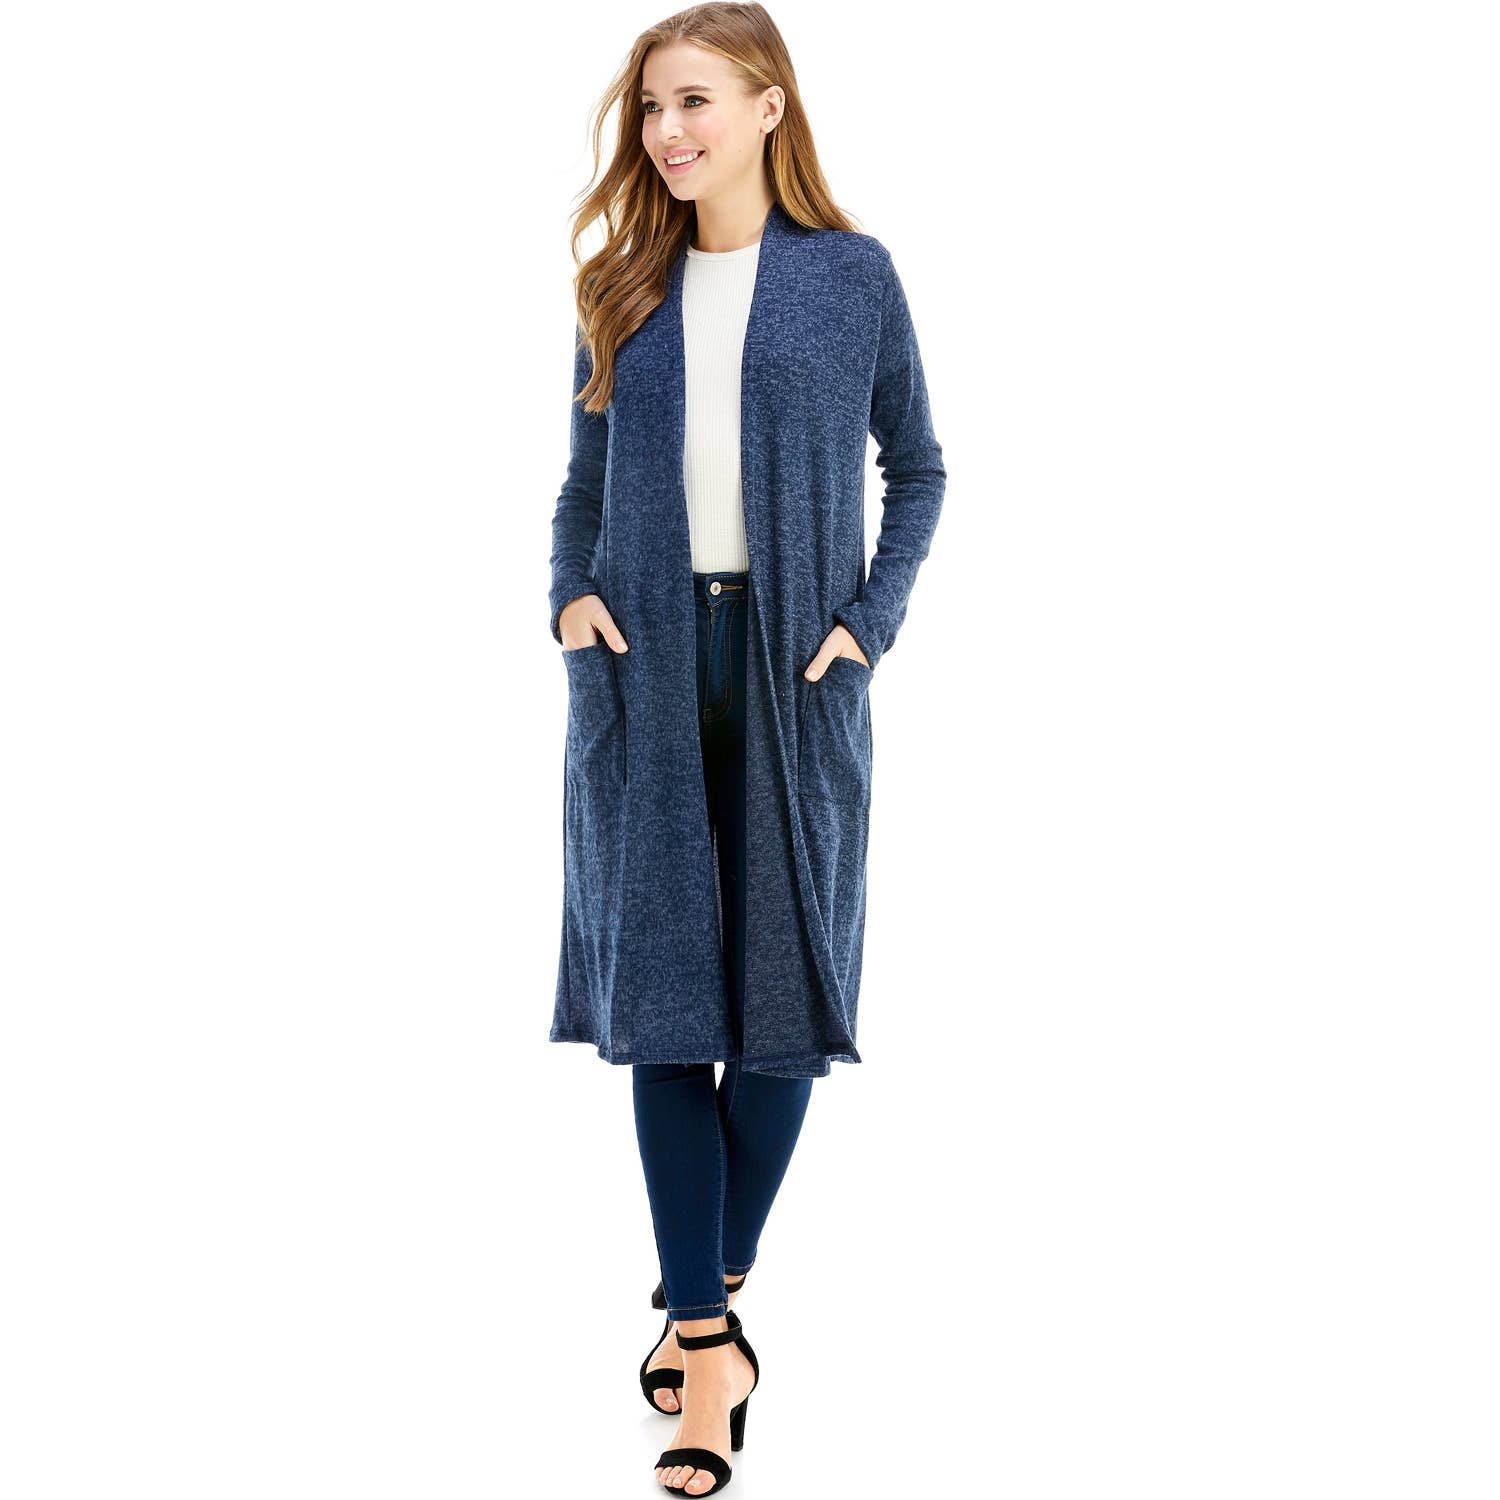 AZULES. - AJK-3011HC Maxi Long Sleeve Cardigan with Pockets